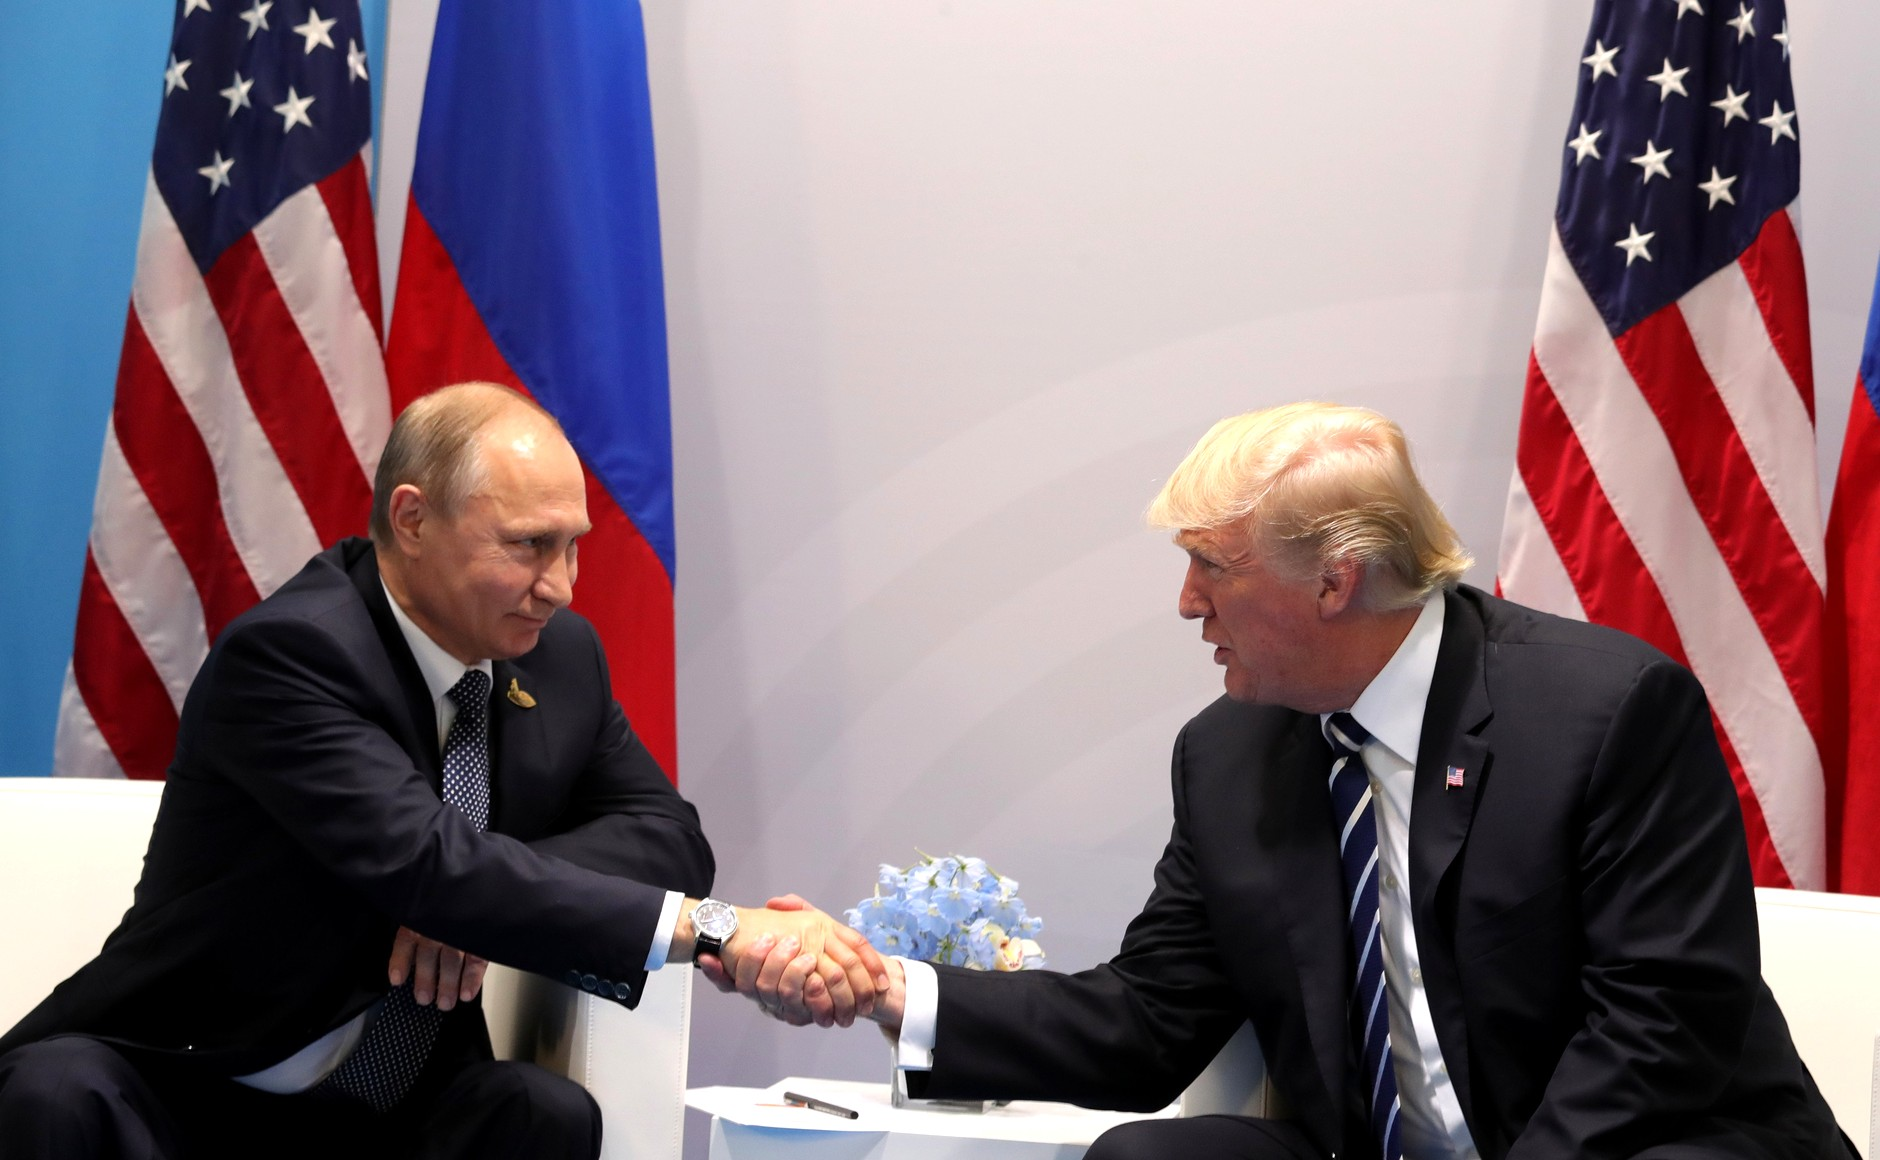 Russia policy after the US election – European Council on Foreign Relations